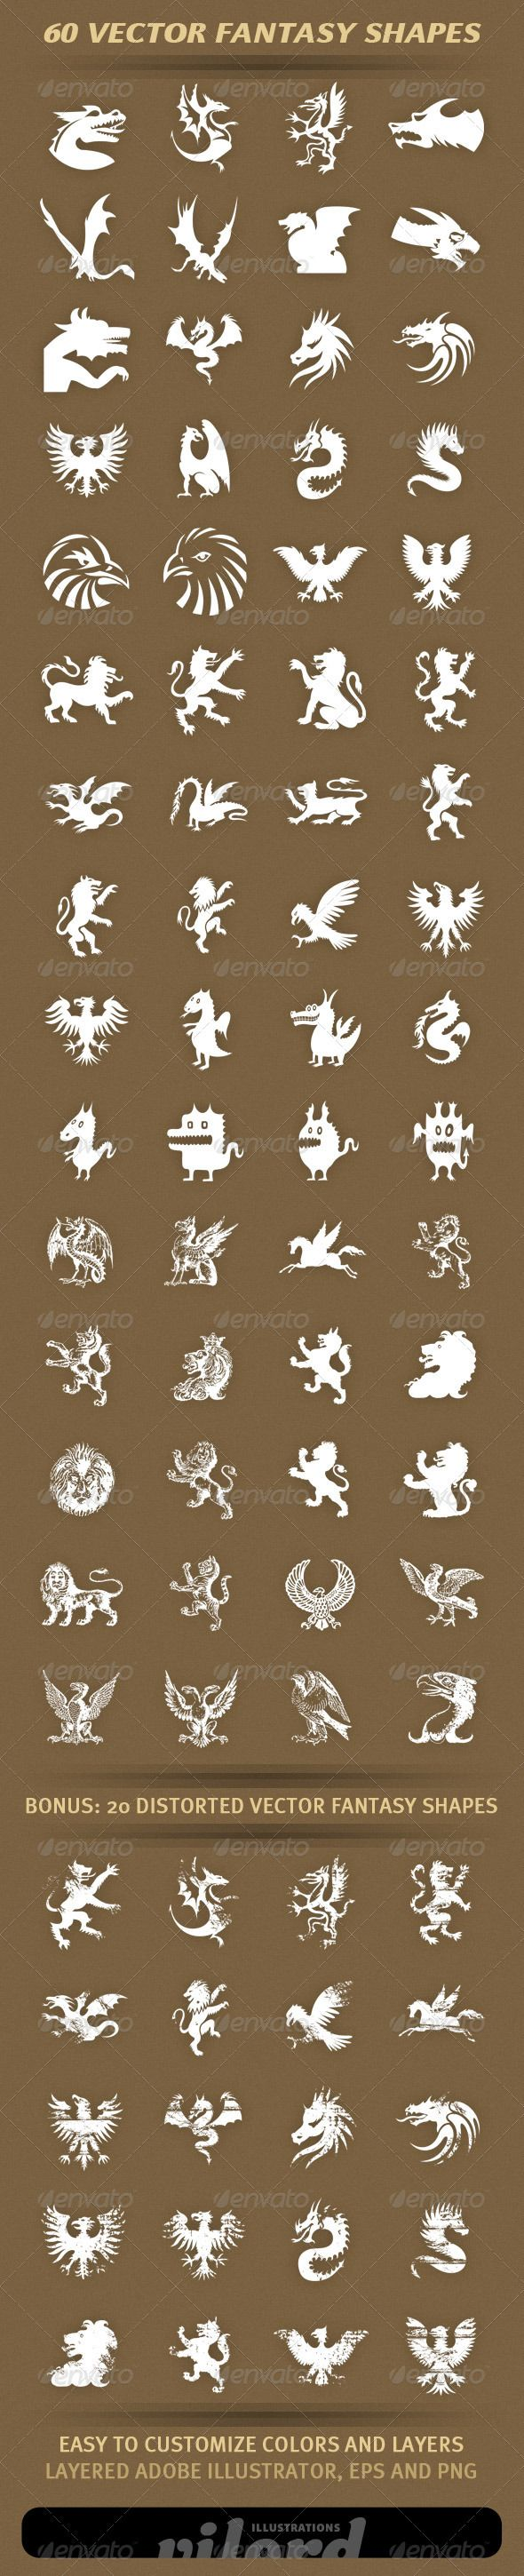 """60 Fantasy Shapes  #GraphicRiver         Set of 40 vector fantasy creature shapes for your graphic designs. Great for print or web design! Enjoy    Adobe Illustrator is main file and """"fully editable"""". Also transparent PNG and EPS files in the package.   BONUS : 20 distorted fantasy shapes also included.     Created: 28March12 GraphicsFilesIncluded: TransparentPNG #VectorEPS #AIIllustrator Layered: Yes MinimumAdobeCSVersion: CS Tags: ancient #animals #creatures #crests #decoration #dragon"""